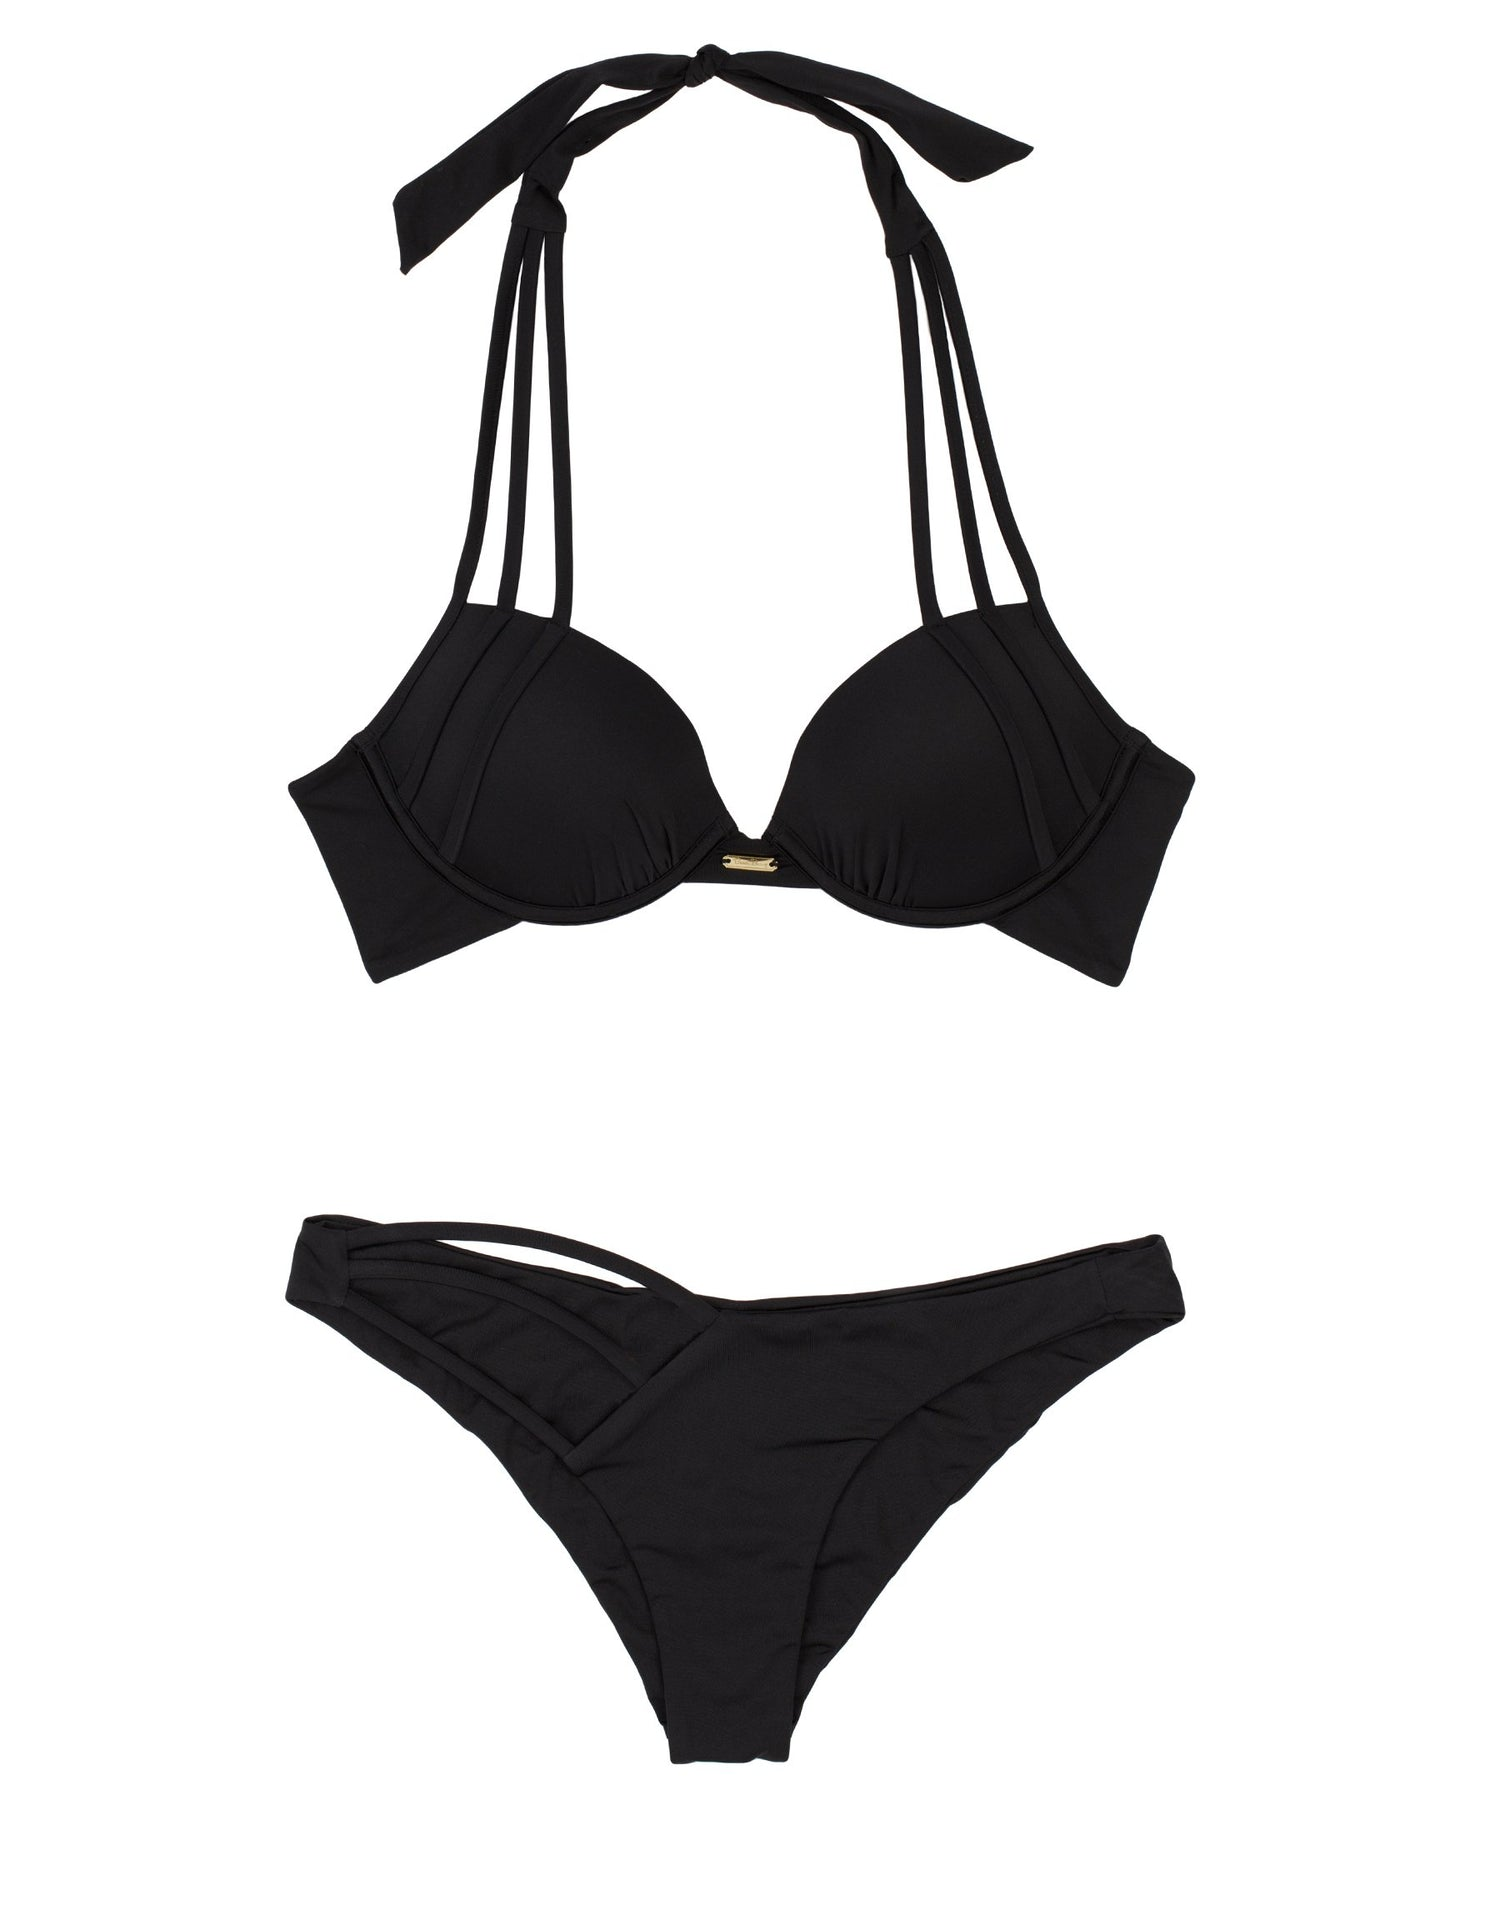 Kennedy Skimpy Bikini Bottom in Black - product view